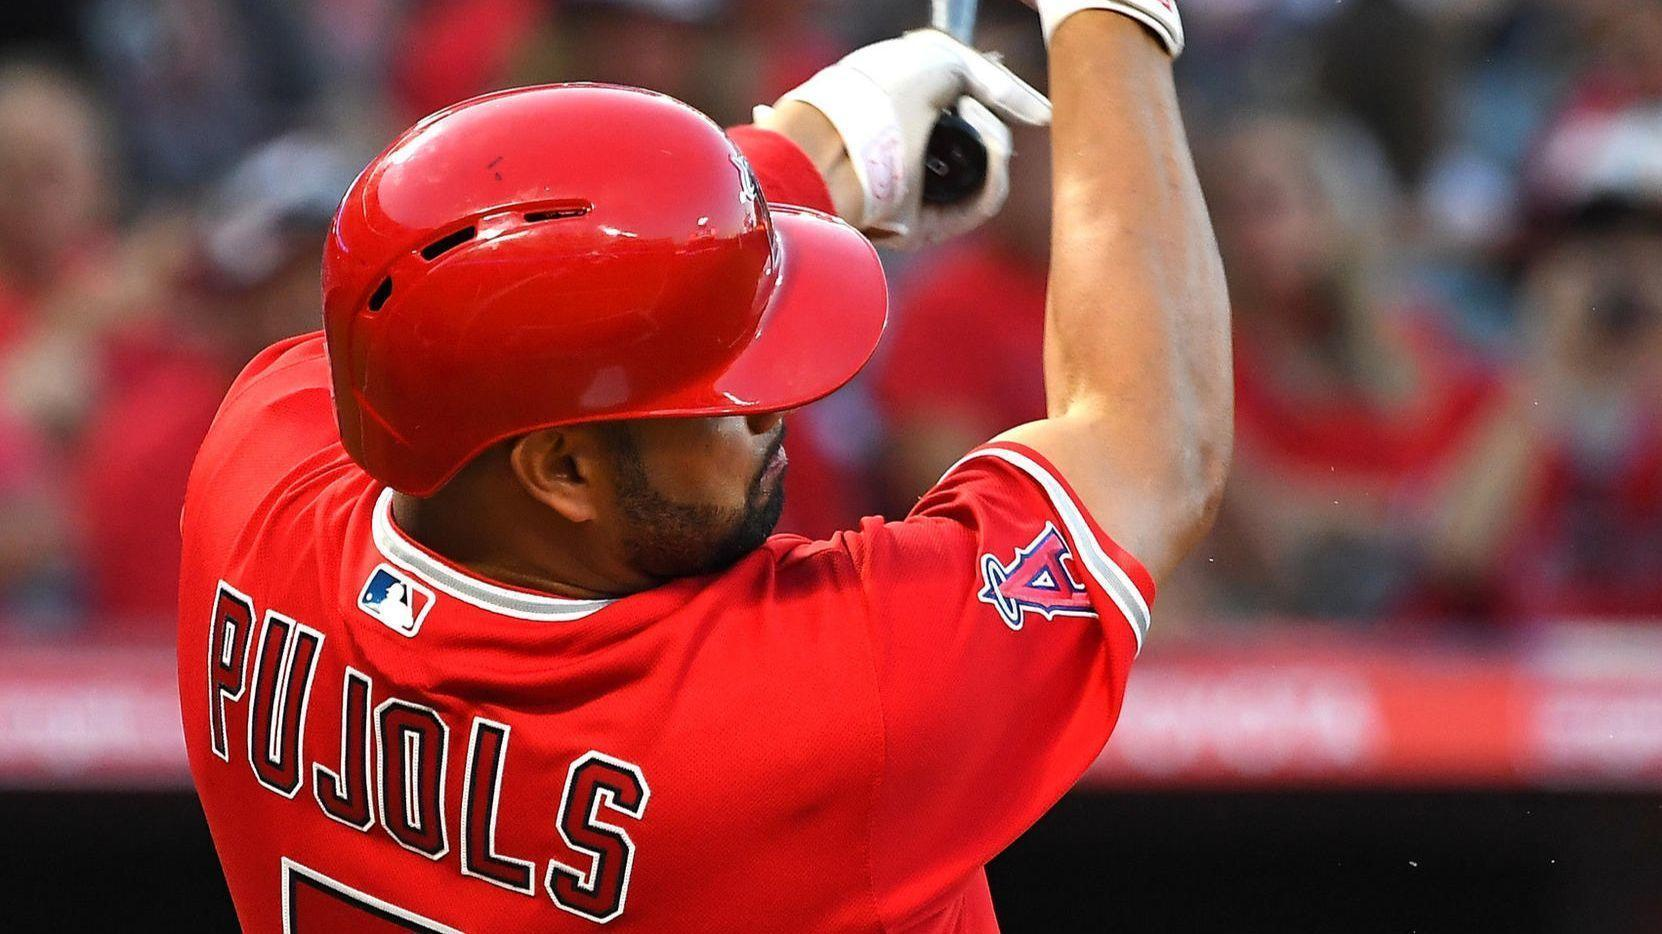 Angels' Pujols continues to play at 'high level' despite knee issues